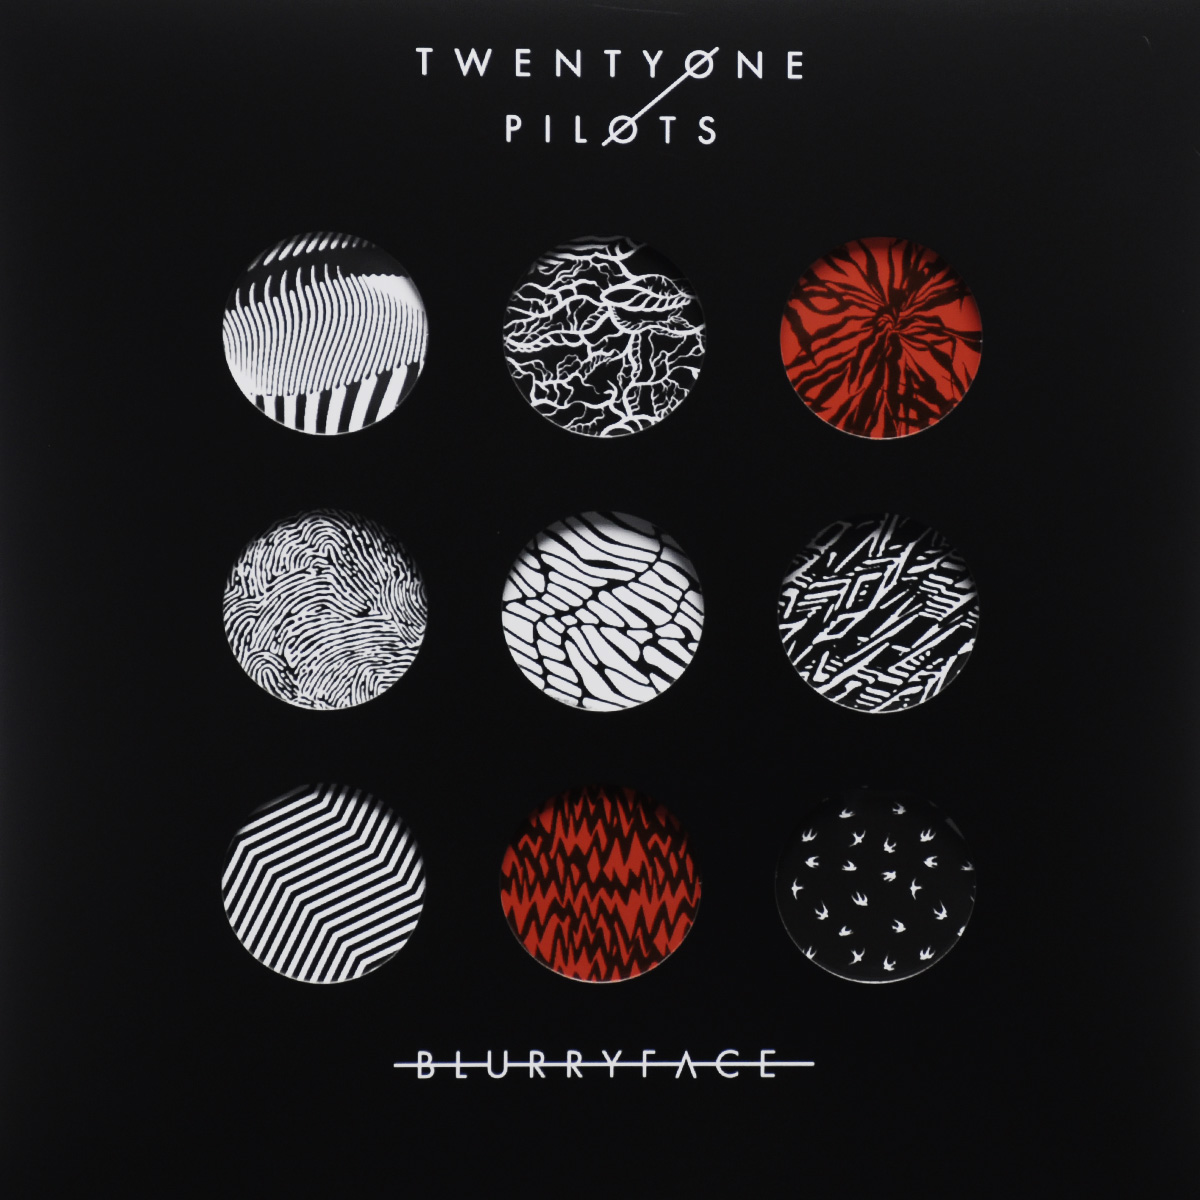 Twenty One Pilots Twenty One Pilots. Blurryface (2 LP) sata ide to usb 2 0 adapter converter with one touch backup for 1 8 2 5 3 5 5 25 hard drive